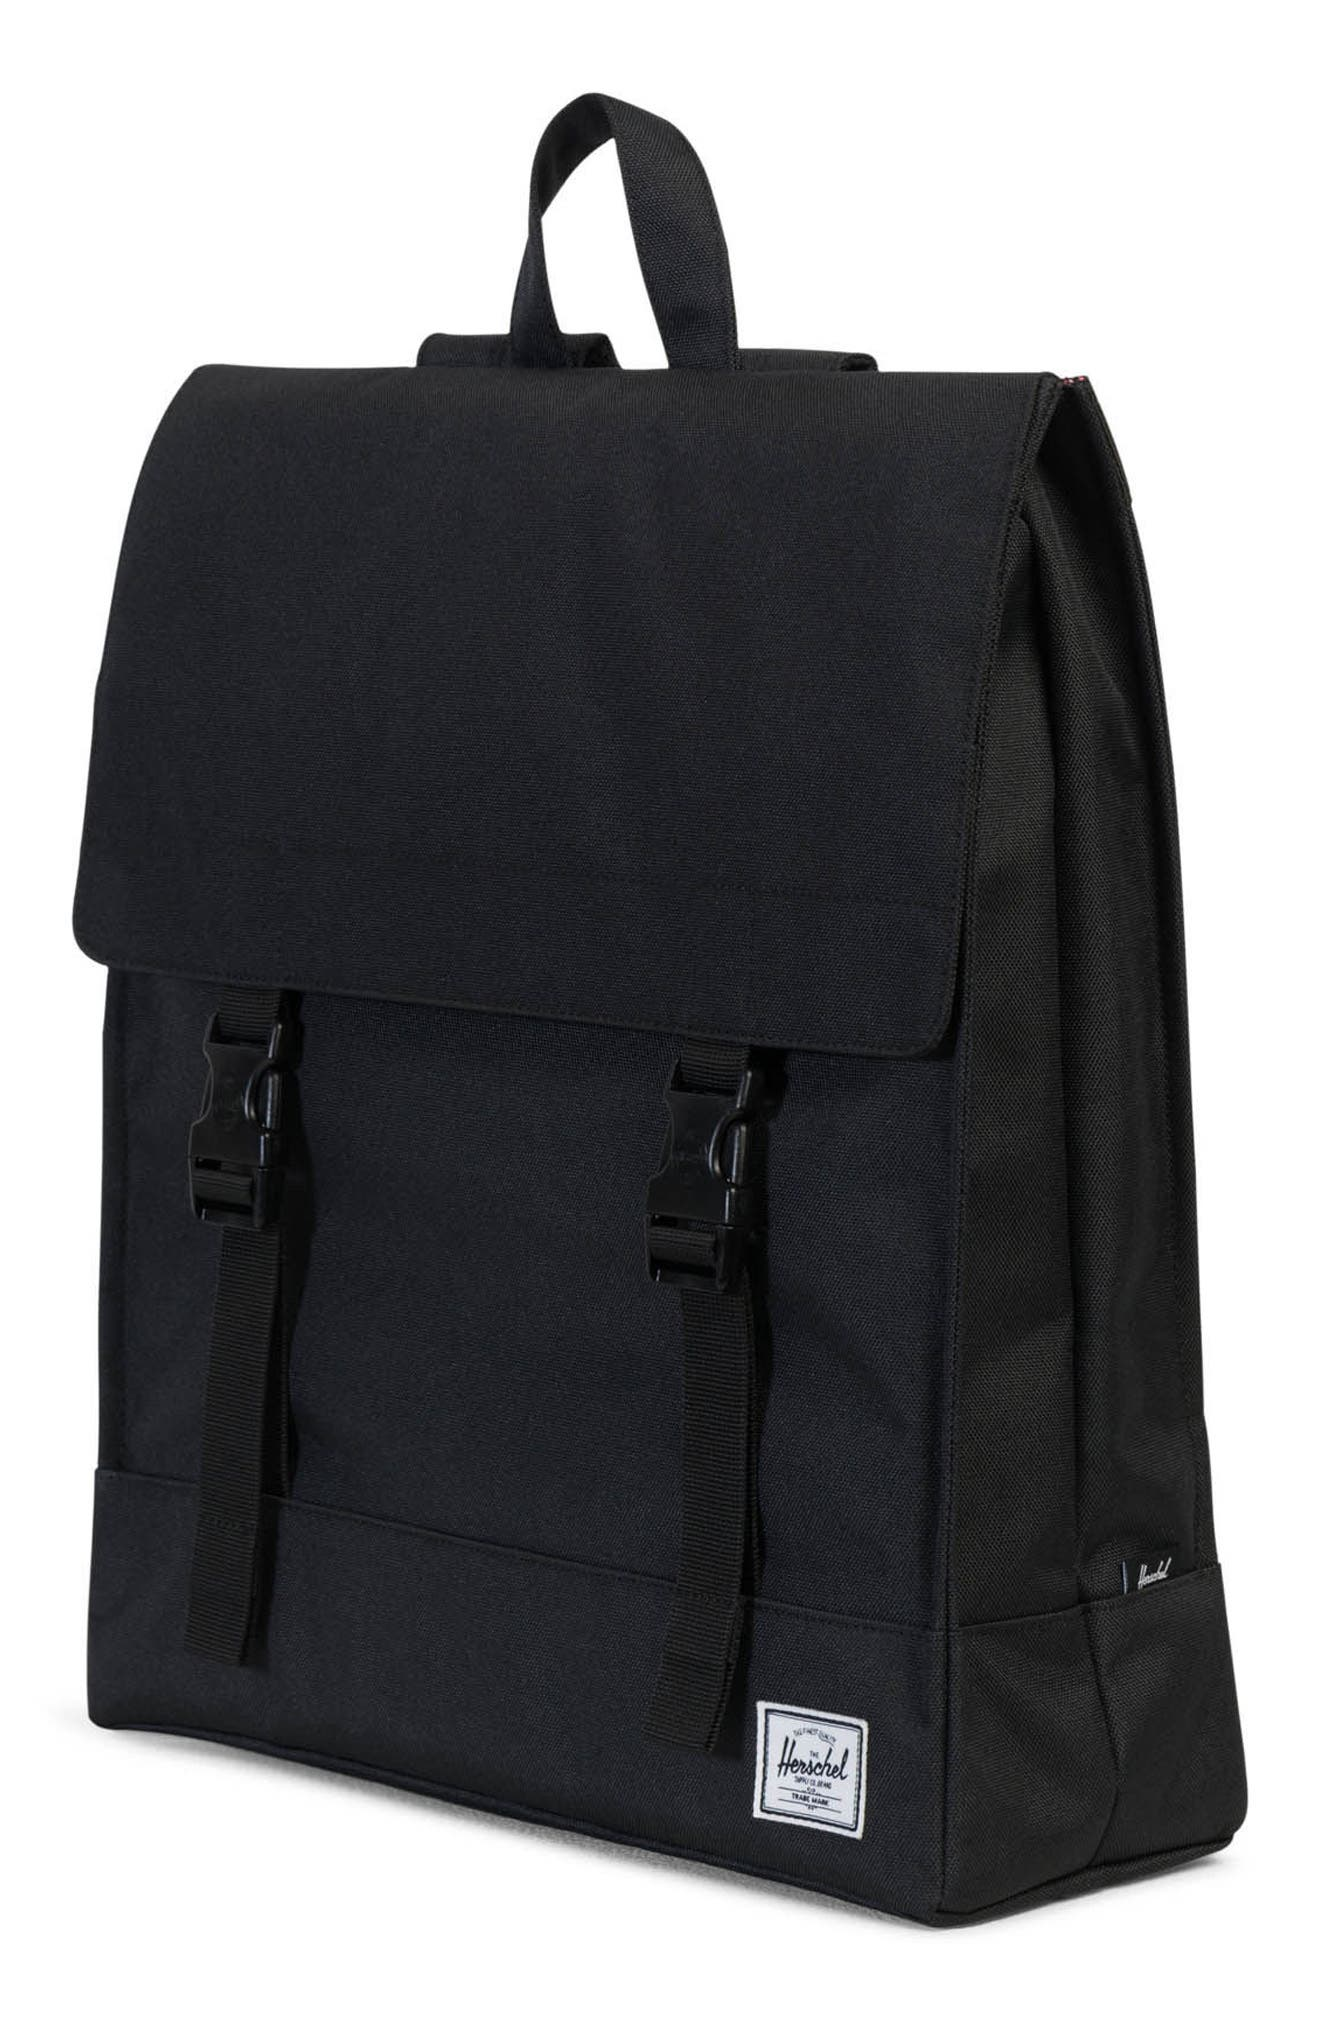 Survey Backpack,                             Alternate thumbnail 7, color,